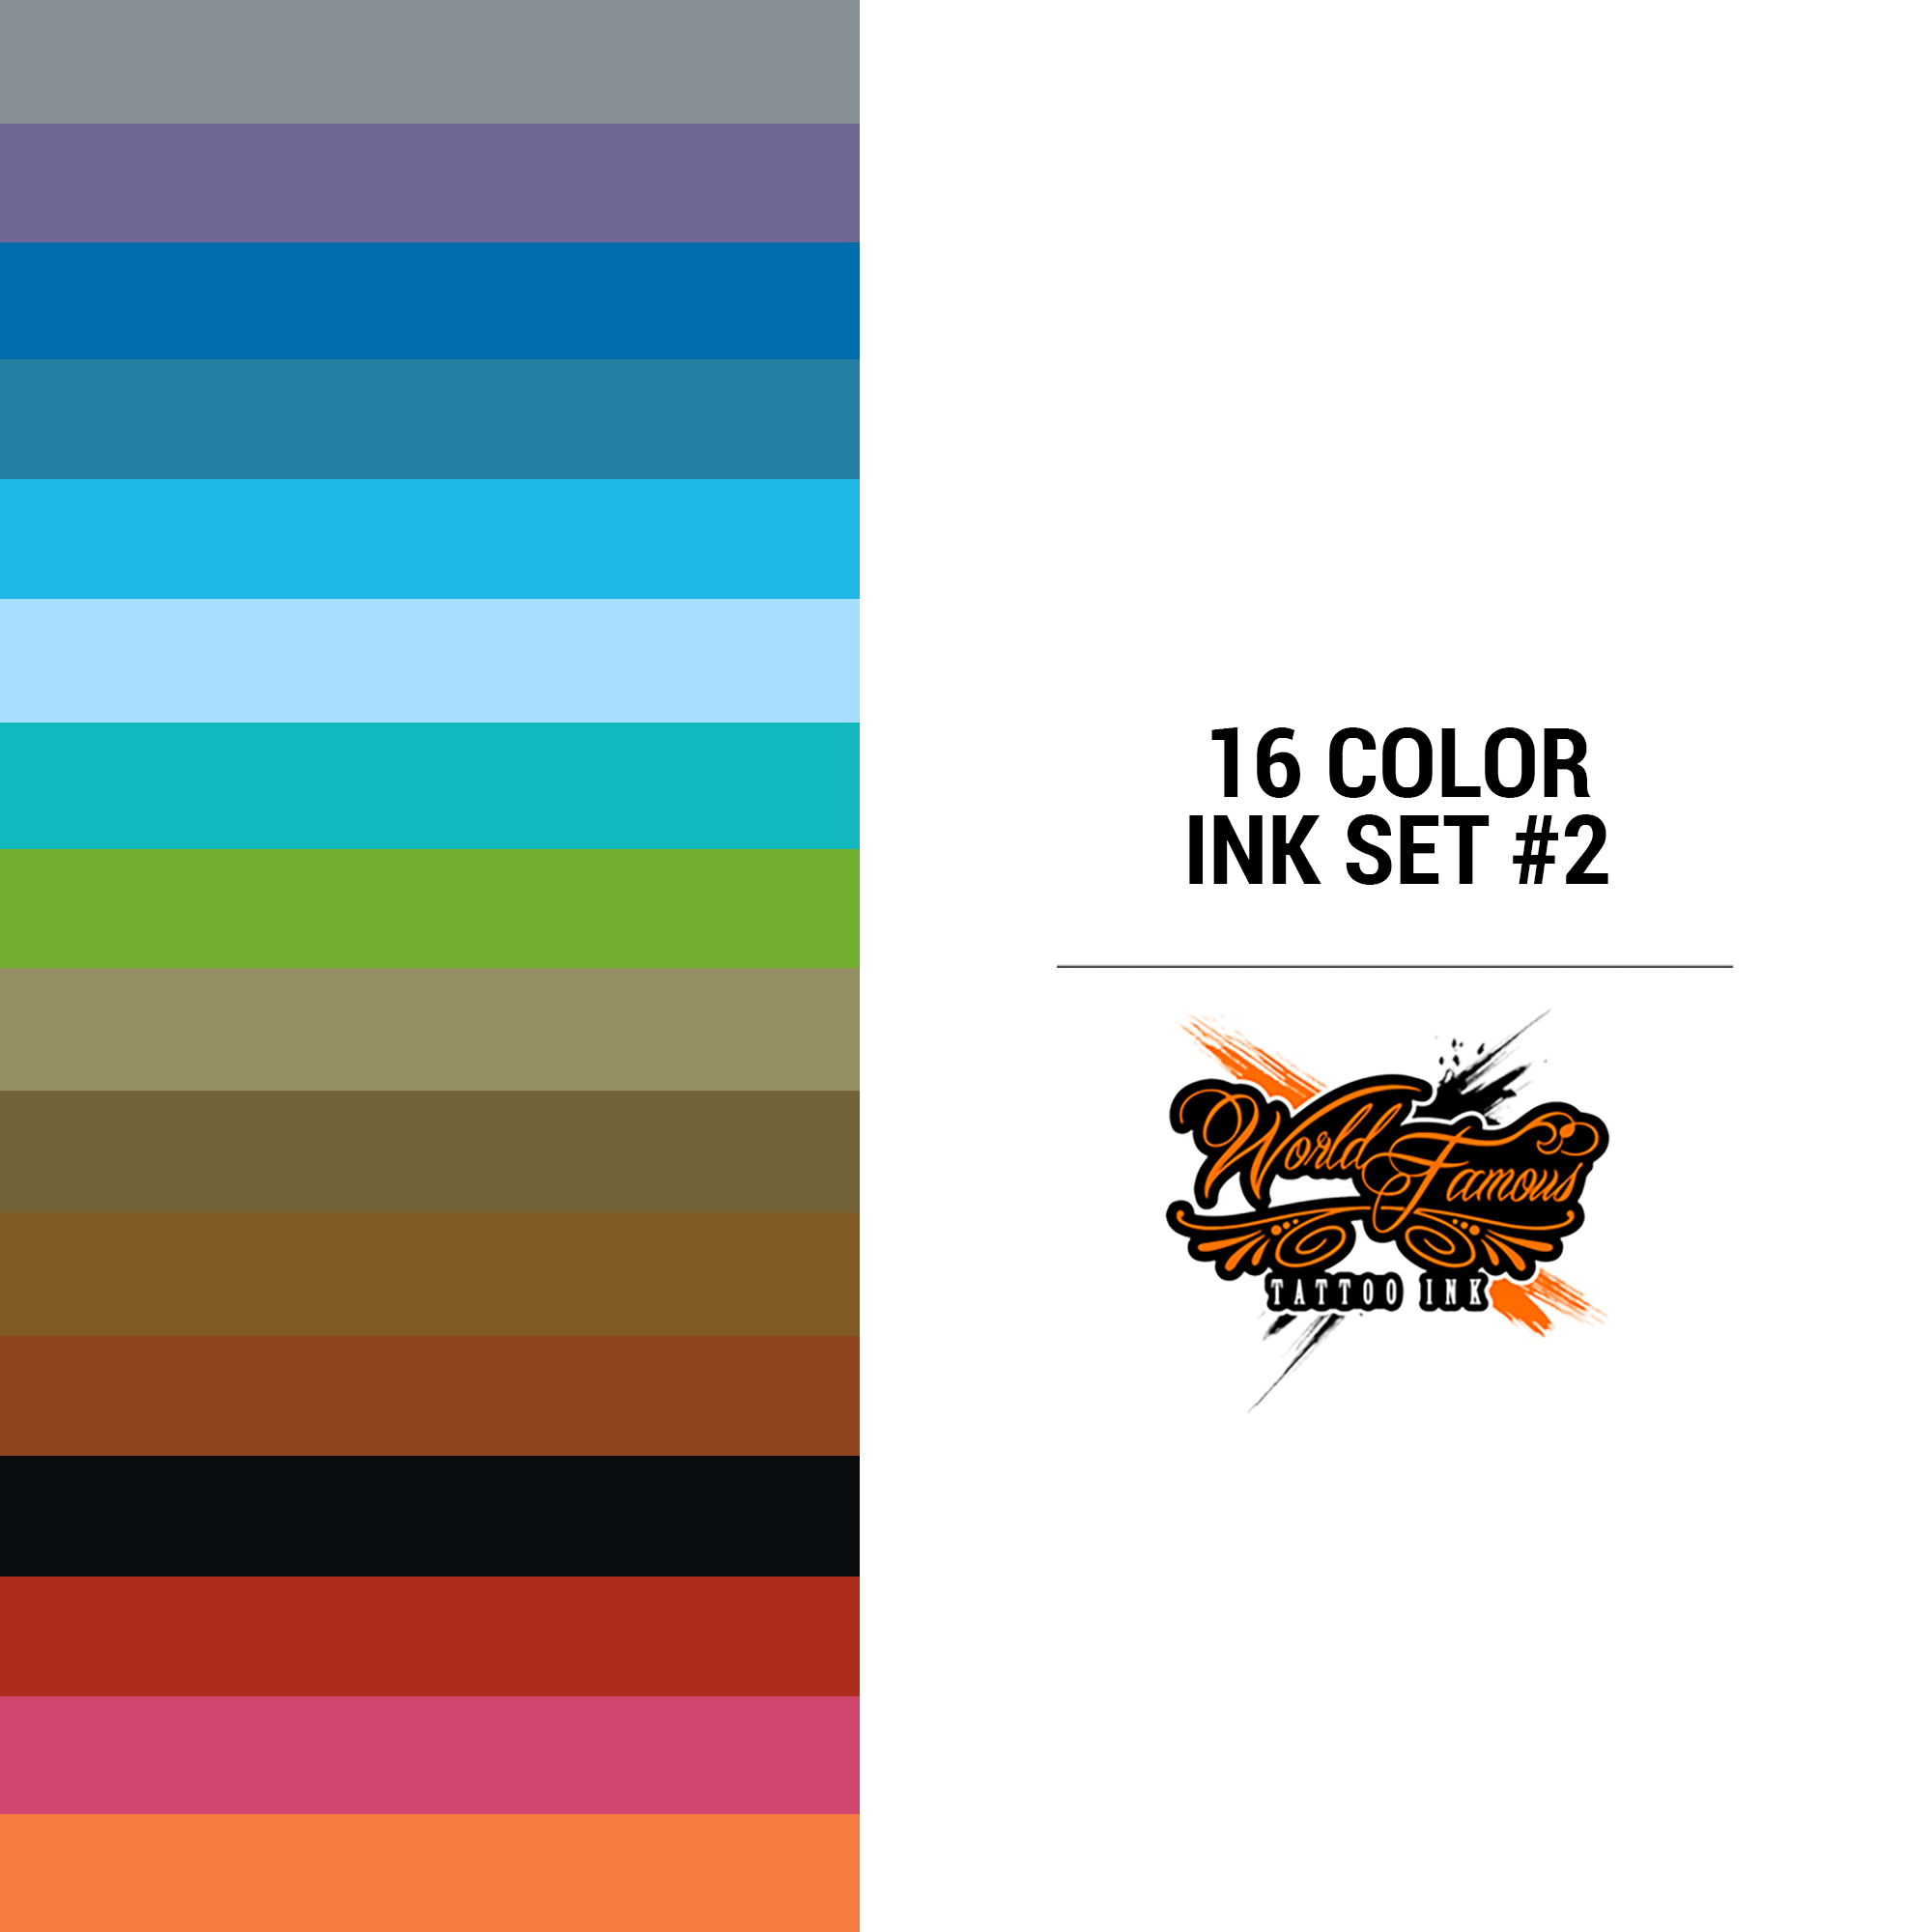 WF 16 Color Ink Set #2